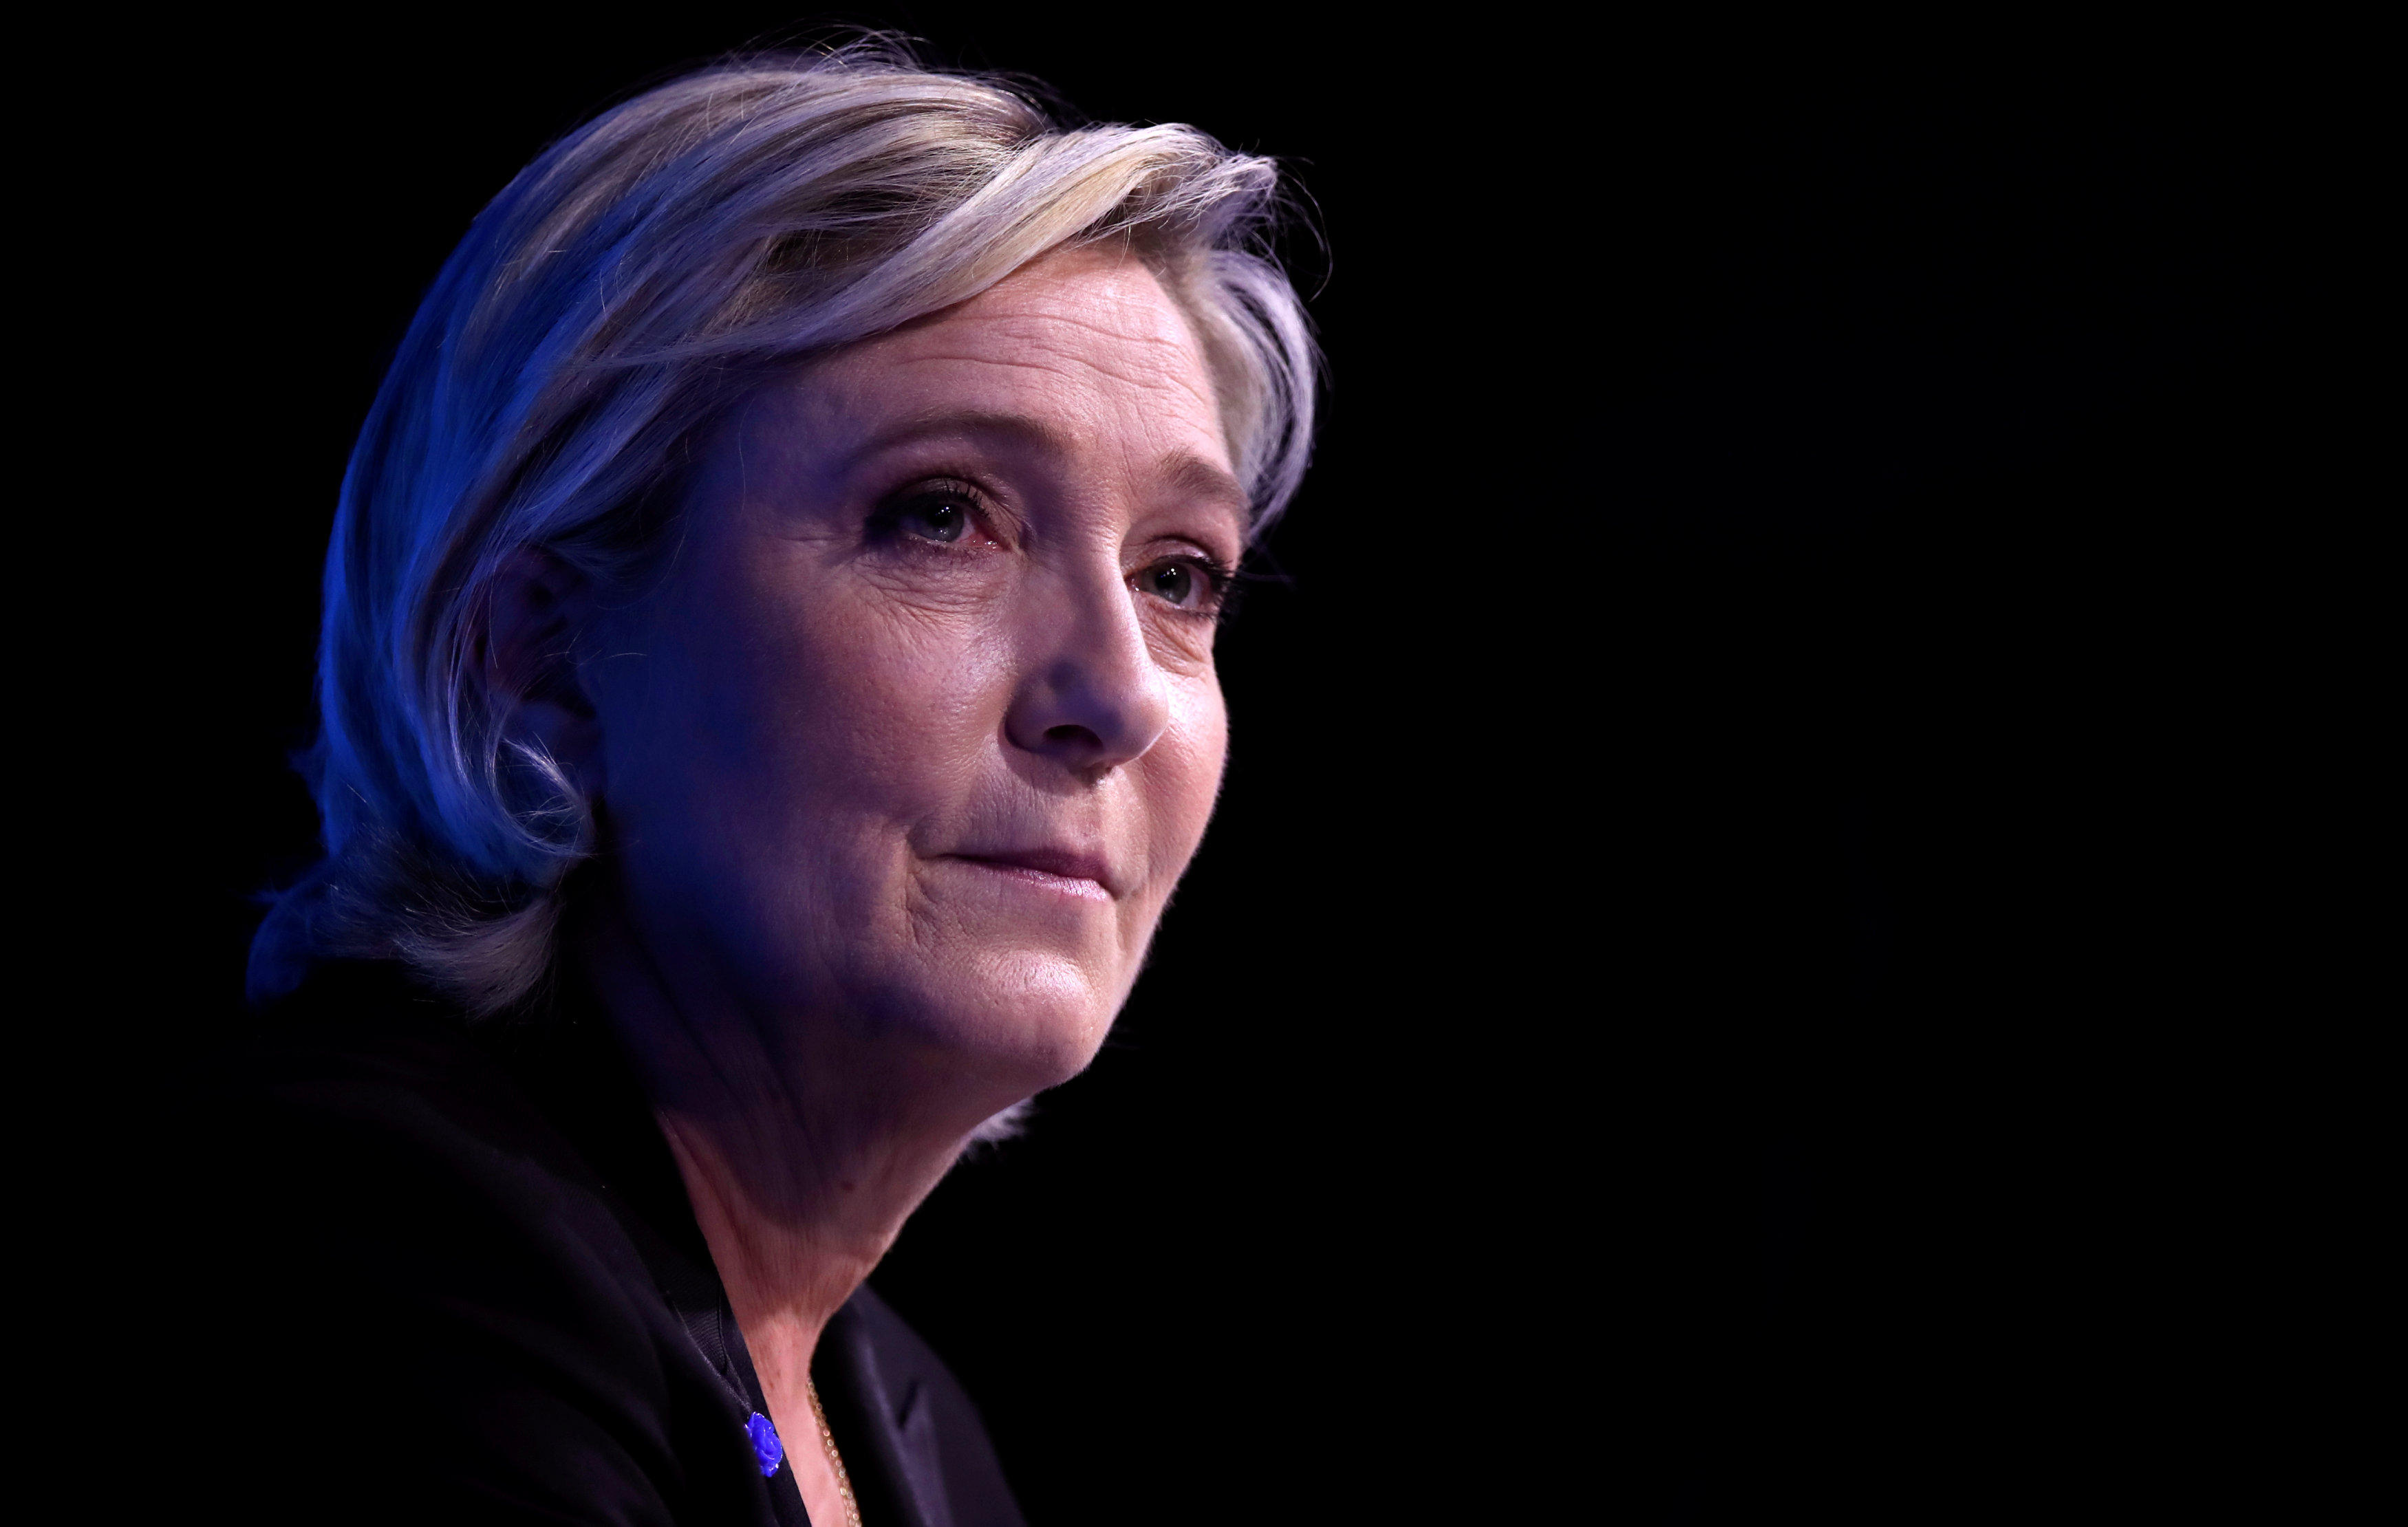 Viewers react to Marine Le Pen's vision of France - CBS News